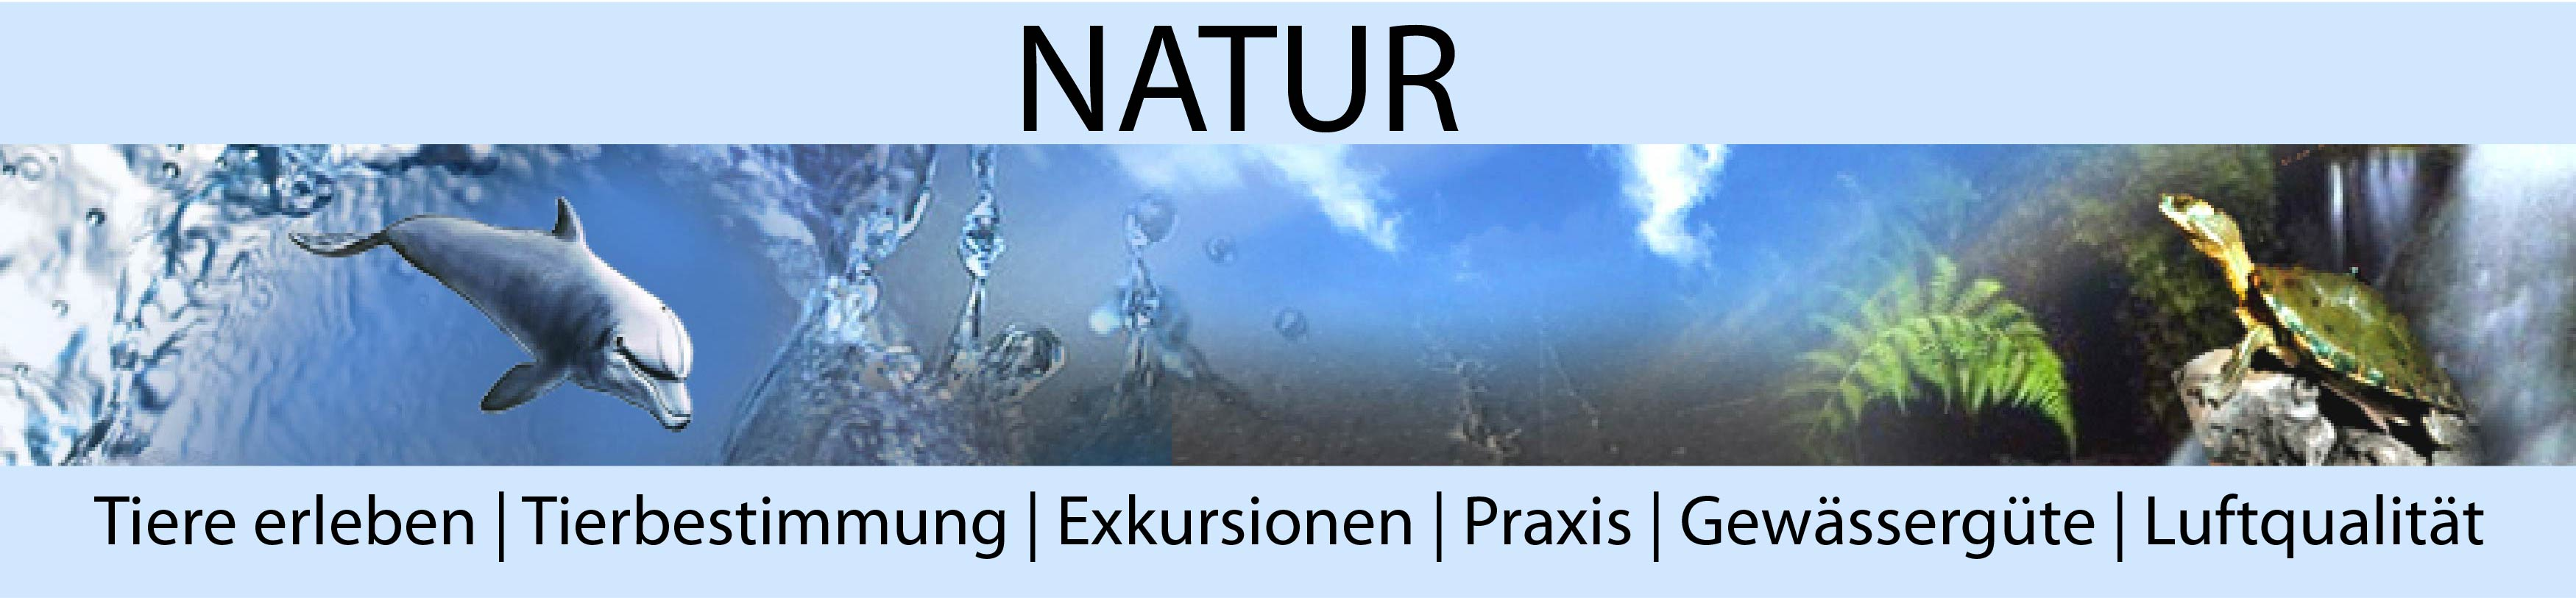 Natur-gross